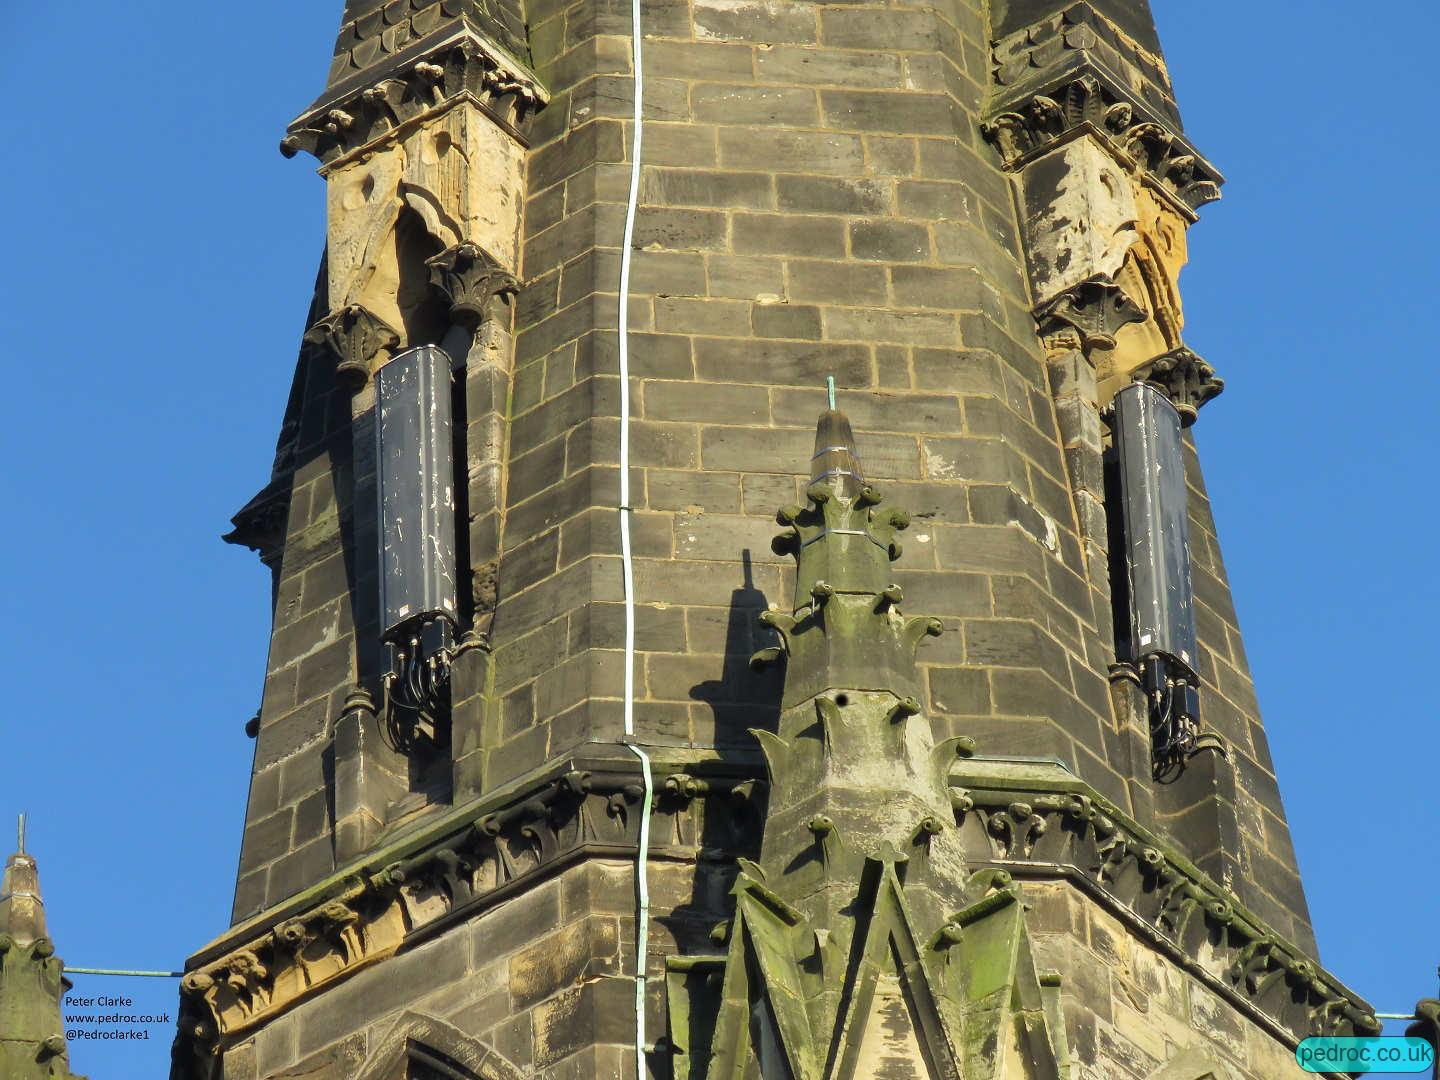 Scarborough St Andrew's United Reformed Church with hidden Kathrein antennas for O2/Vodafone.